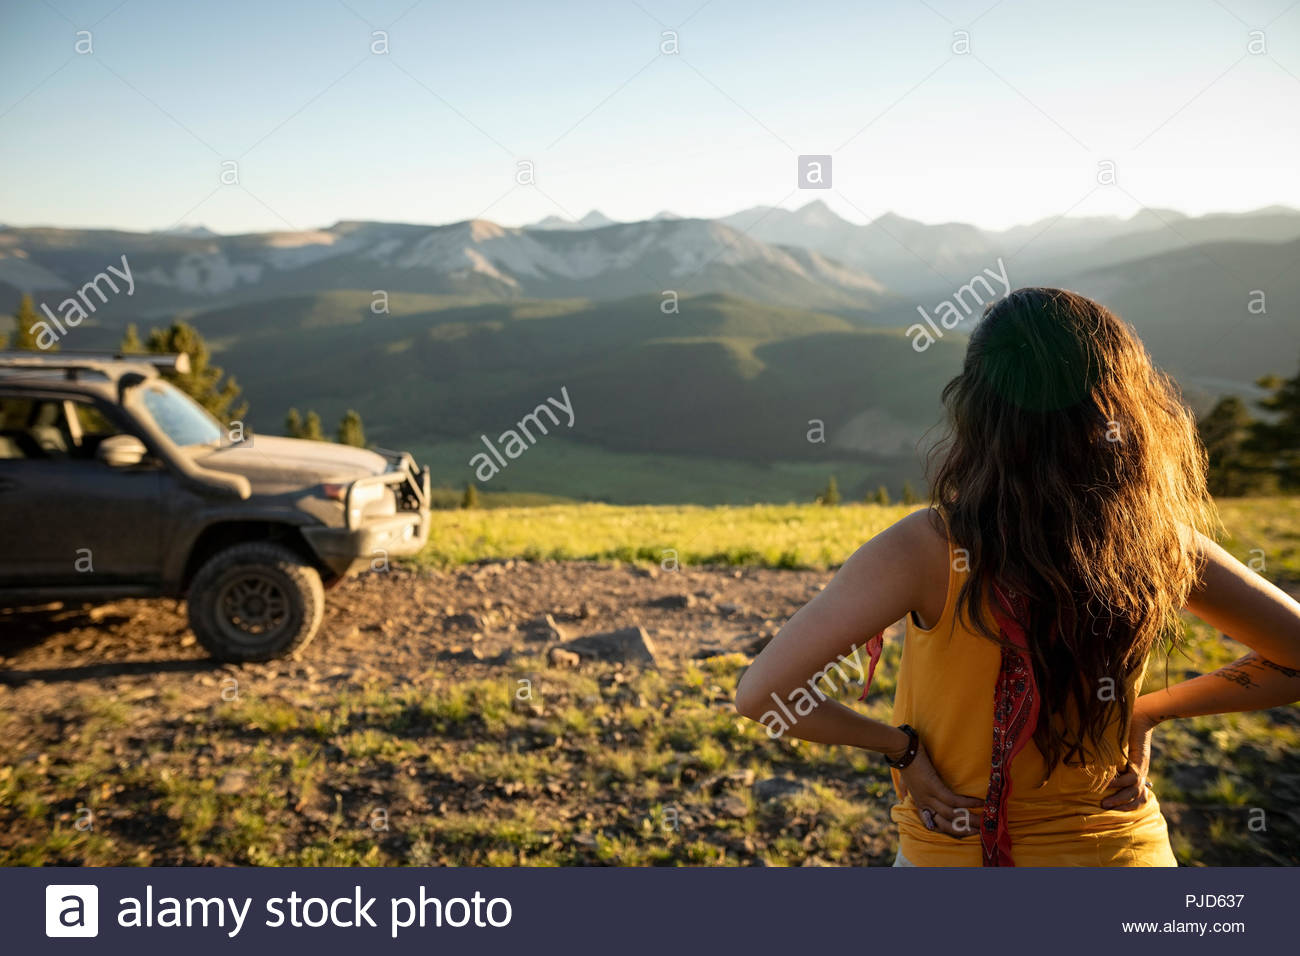 Woman looking at sunny mountain view near SUV, Alberta, Canada - Stock Image